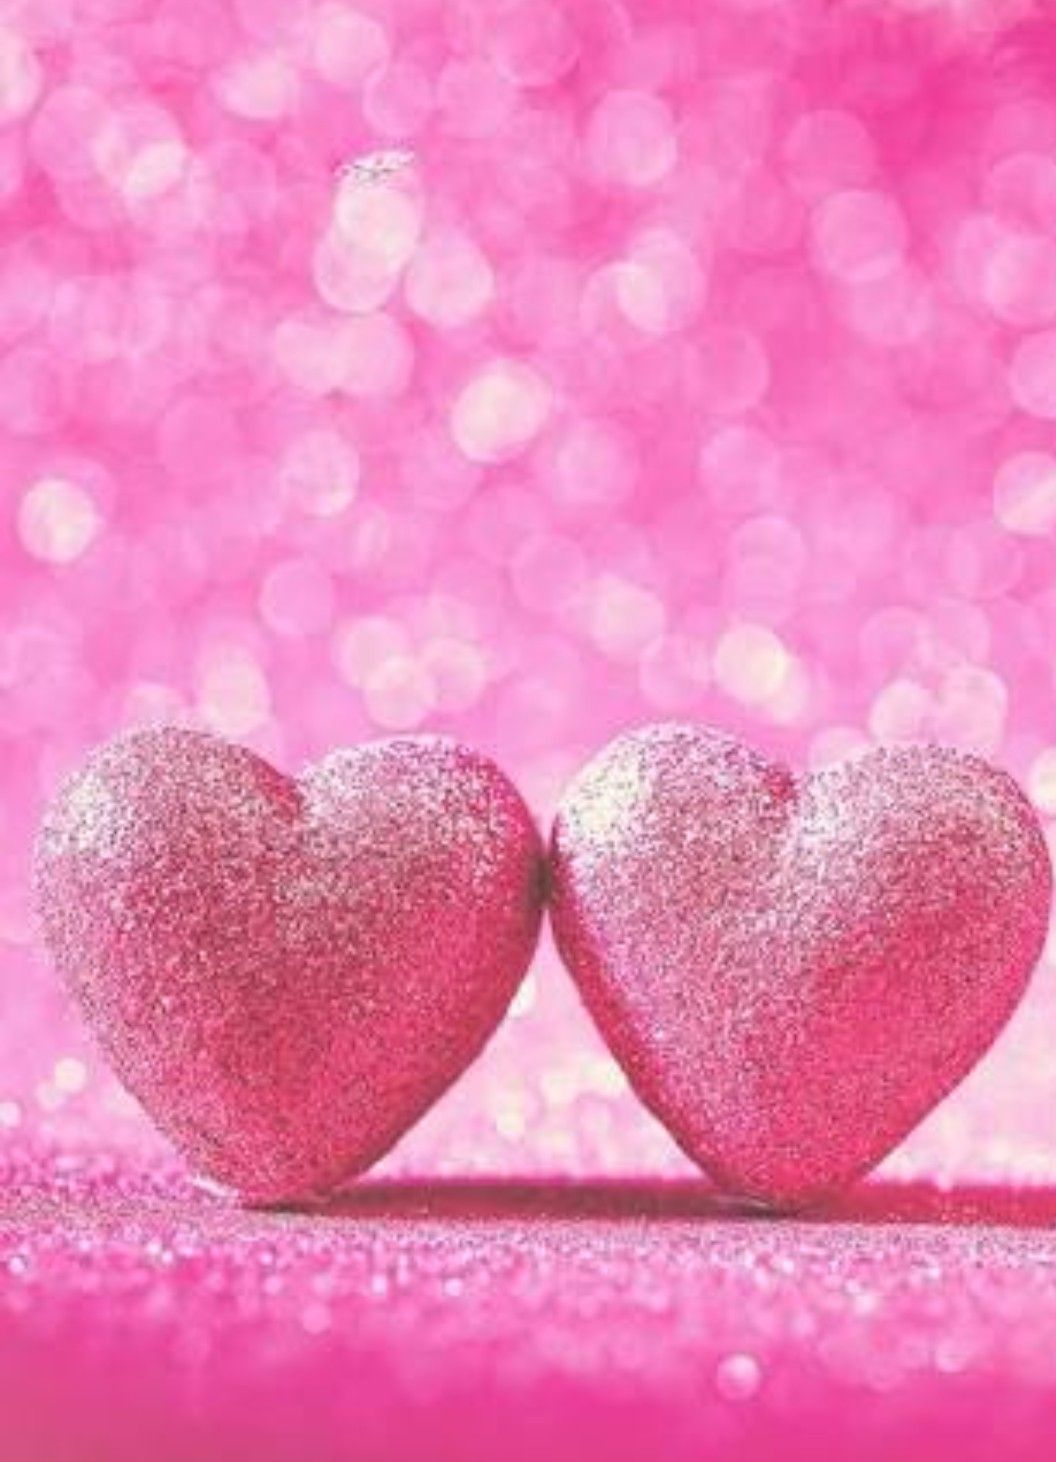 pin by maria on house heart wallpaper heart iphone wallpaper wallpaper iphone cute